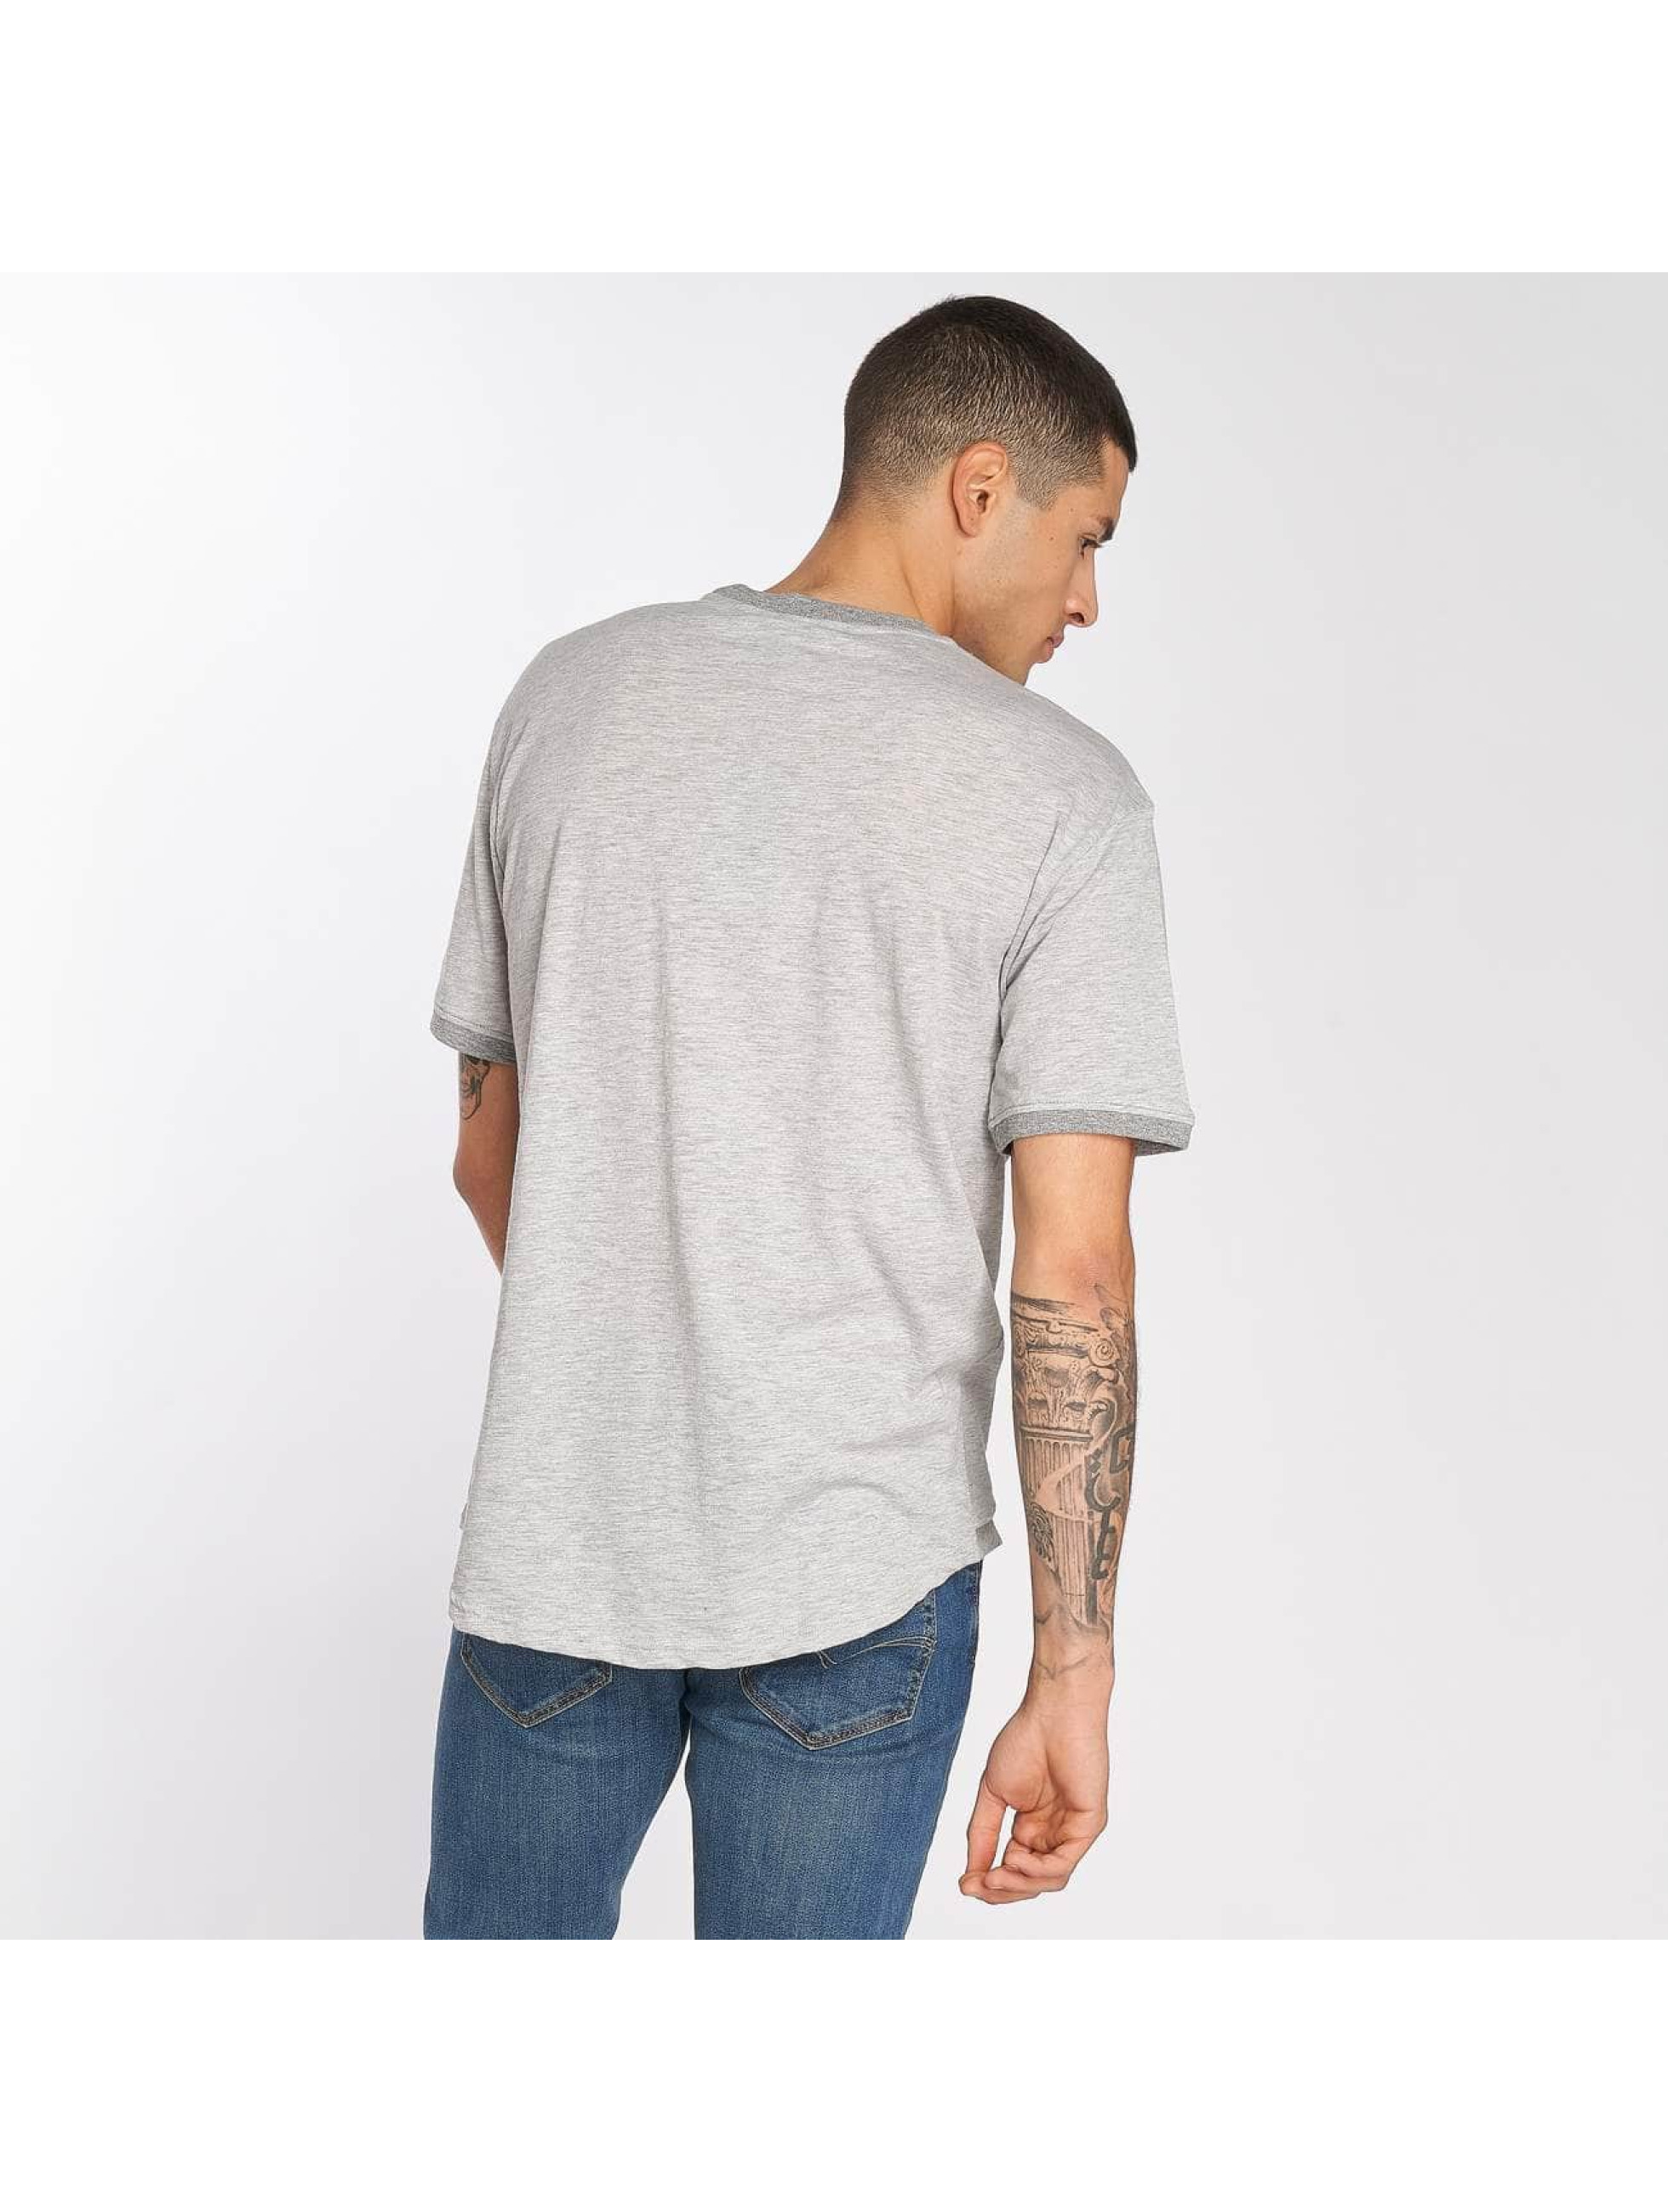 Bench T-Shirt Grindle grau